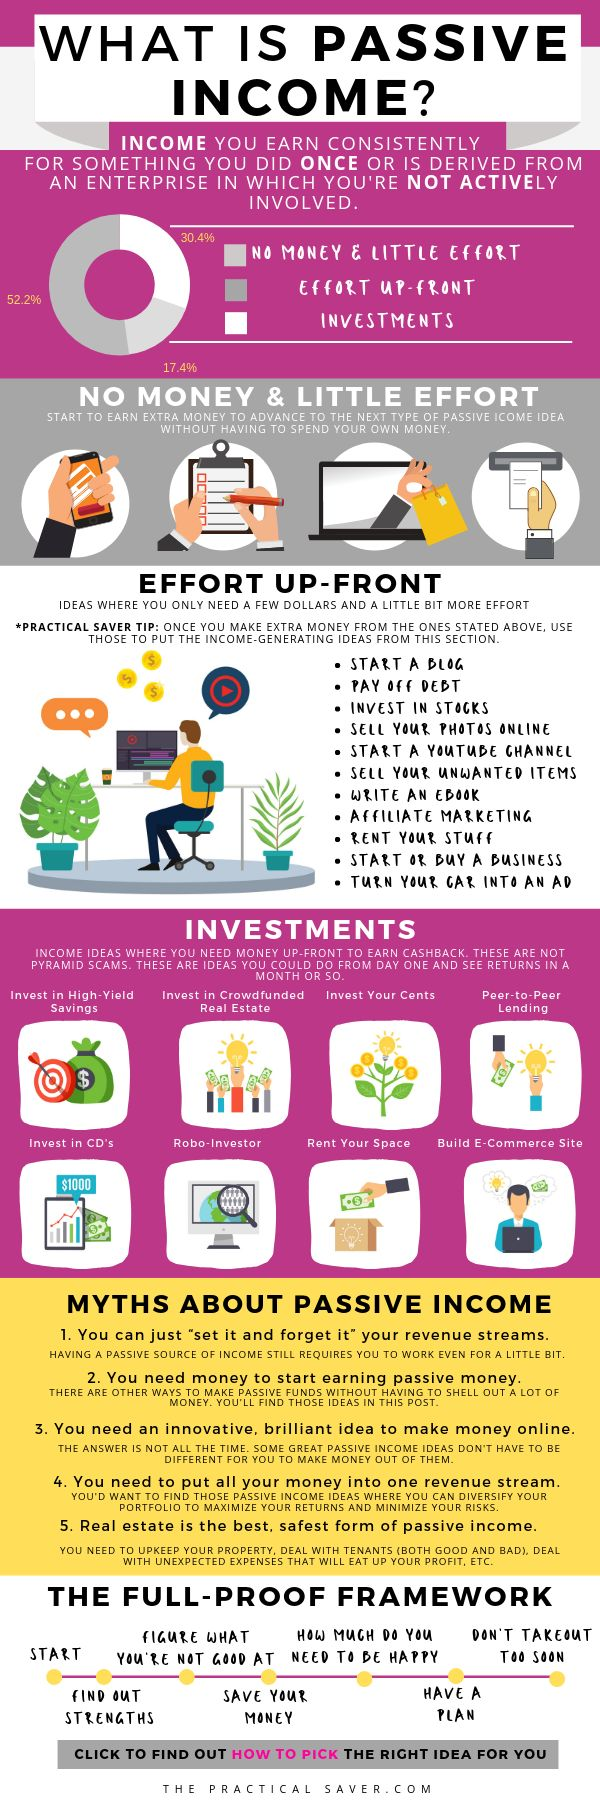 23 Passive Income Ideas and Tips To Make Money 24/…